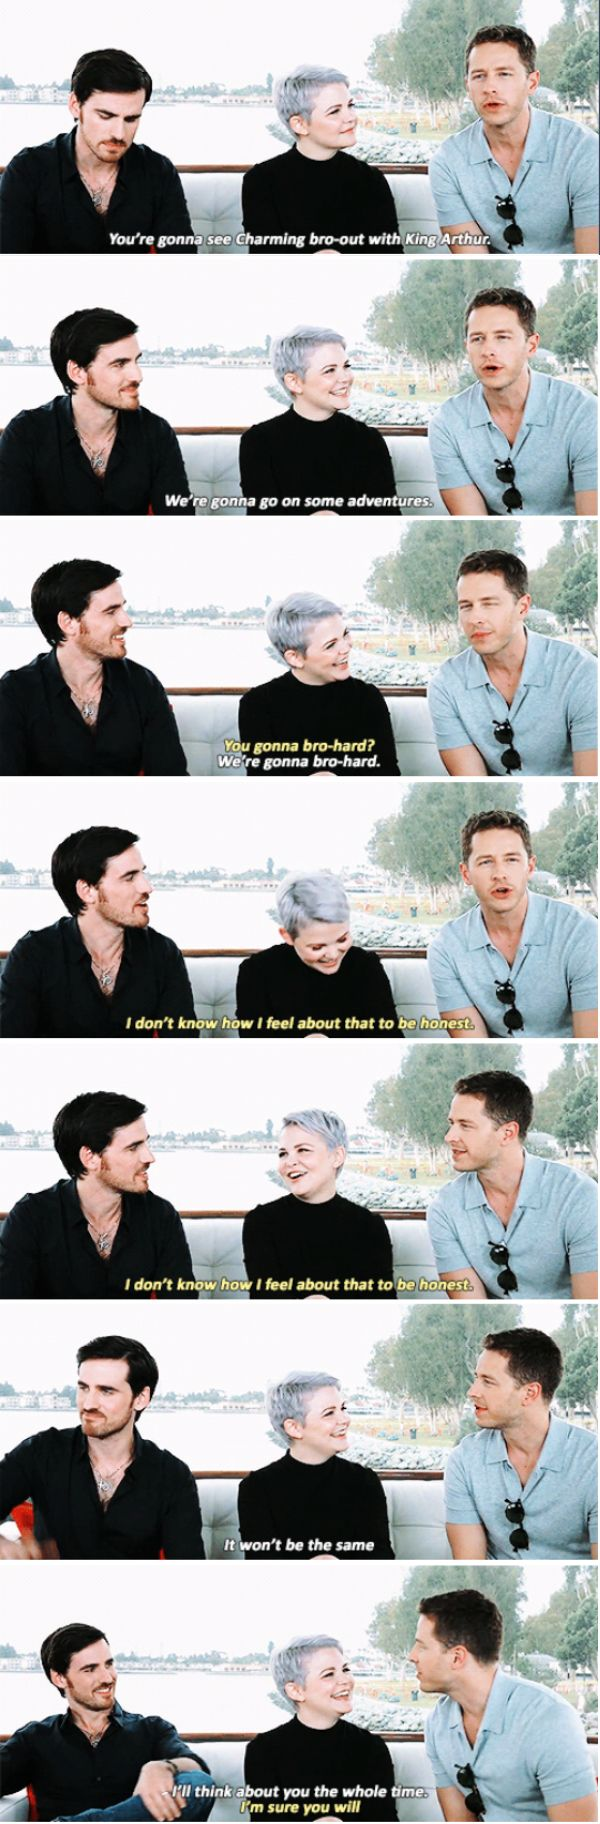 Once Upon a Time. Colin O'Donoghue and Josh Dallas on Hook and Prince Charming. #bromance